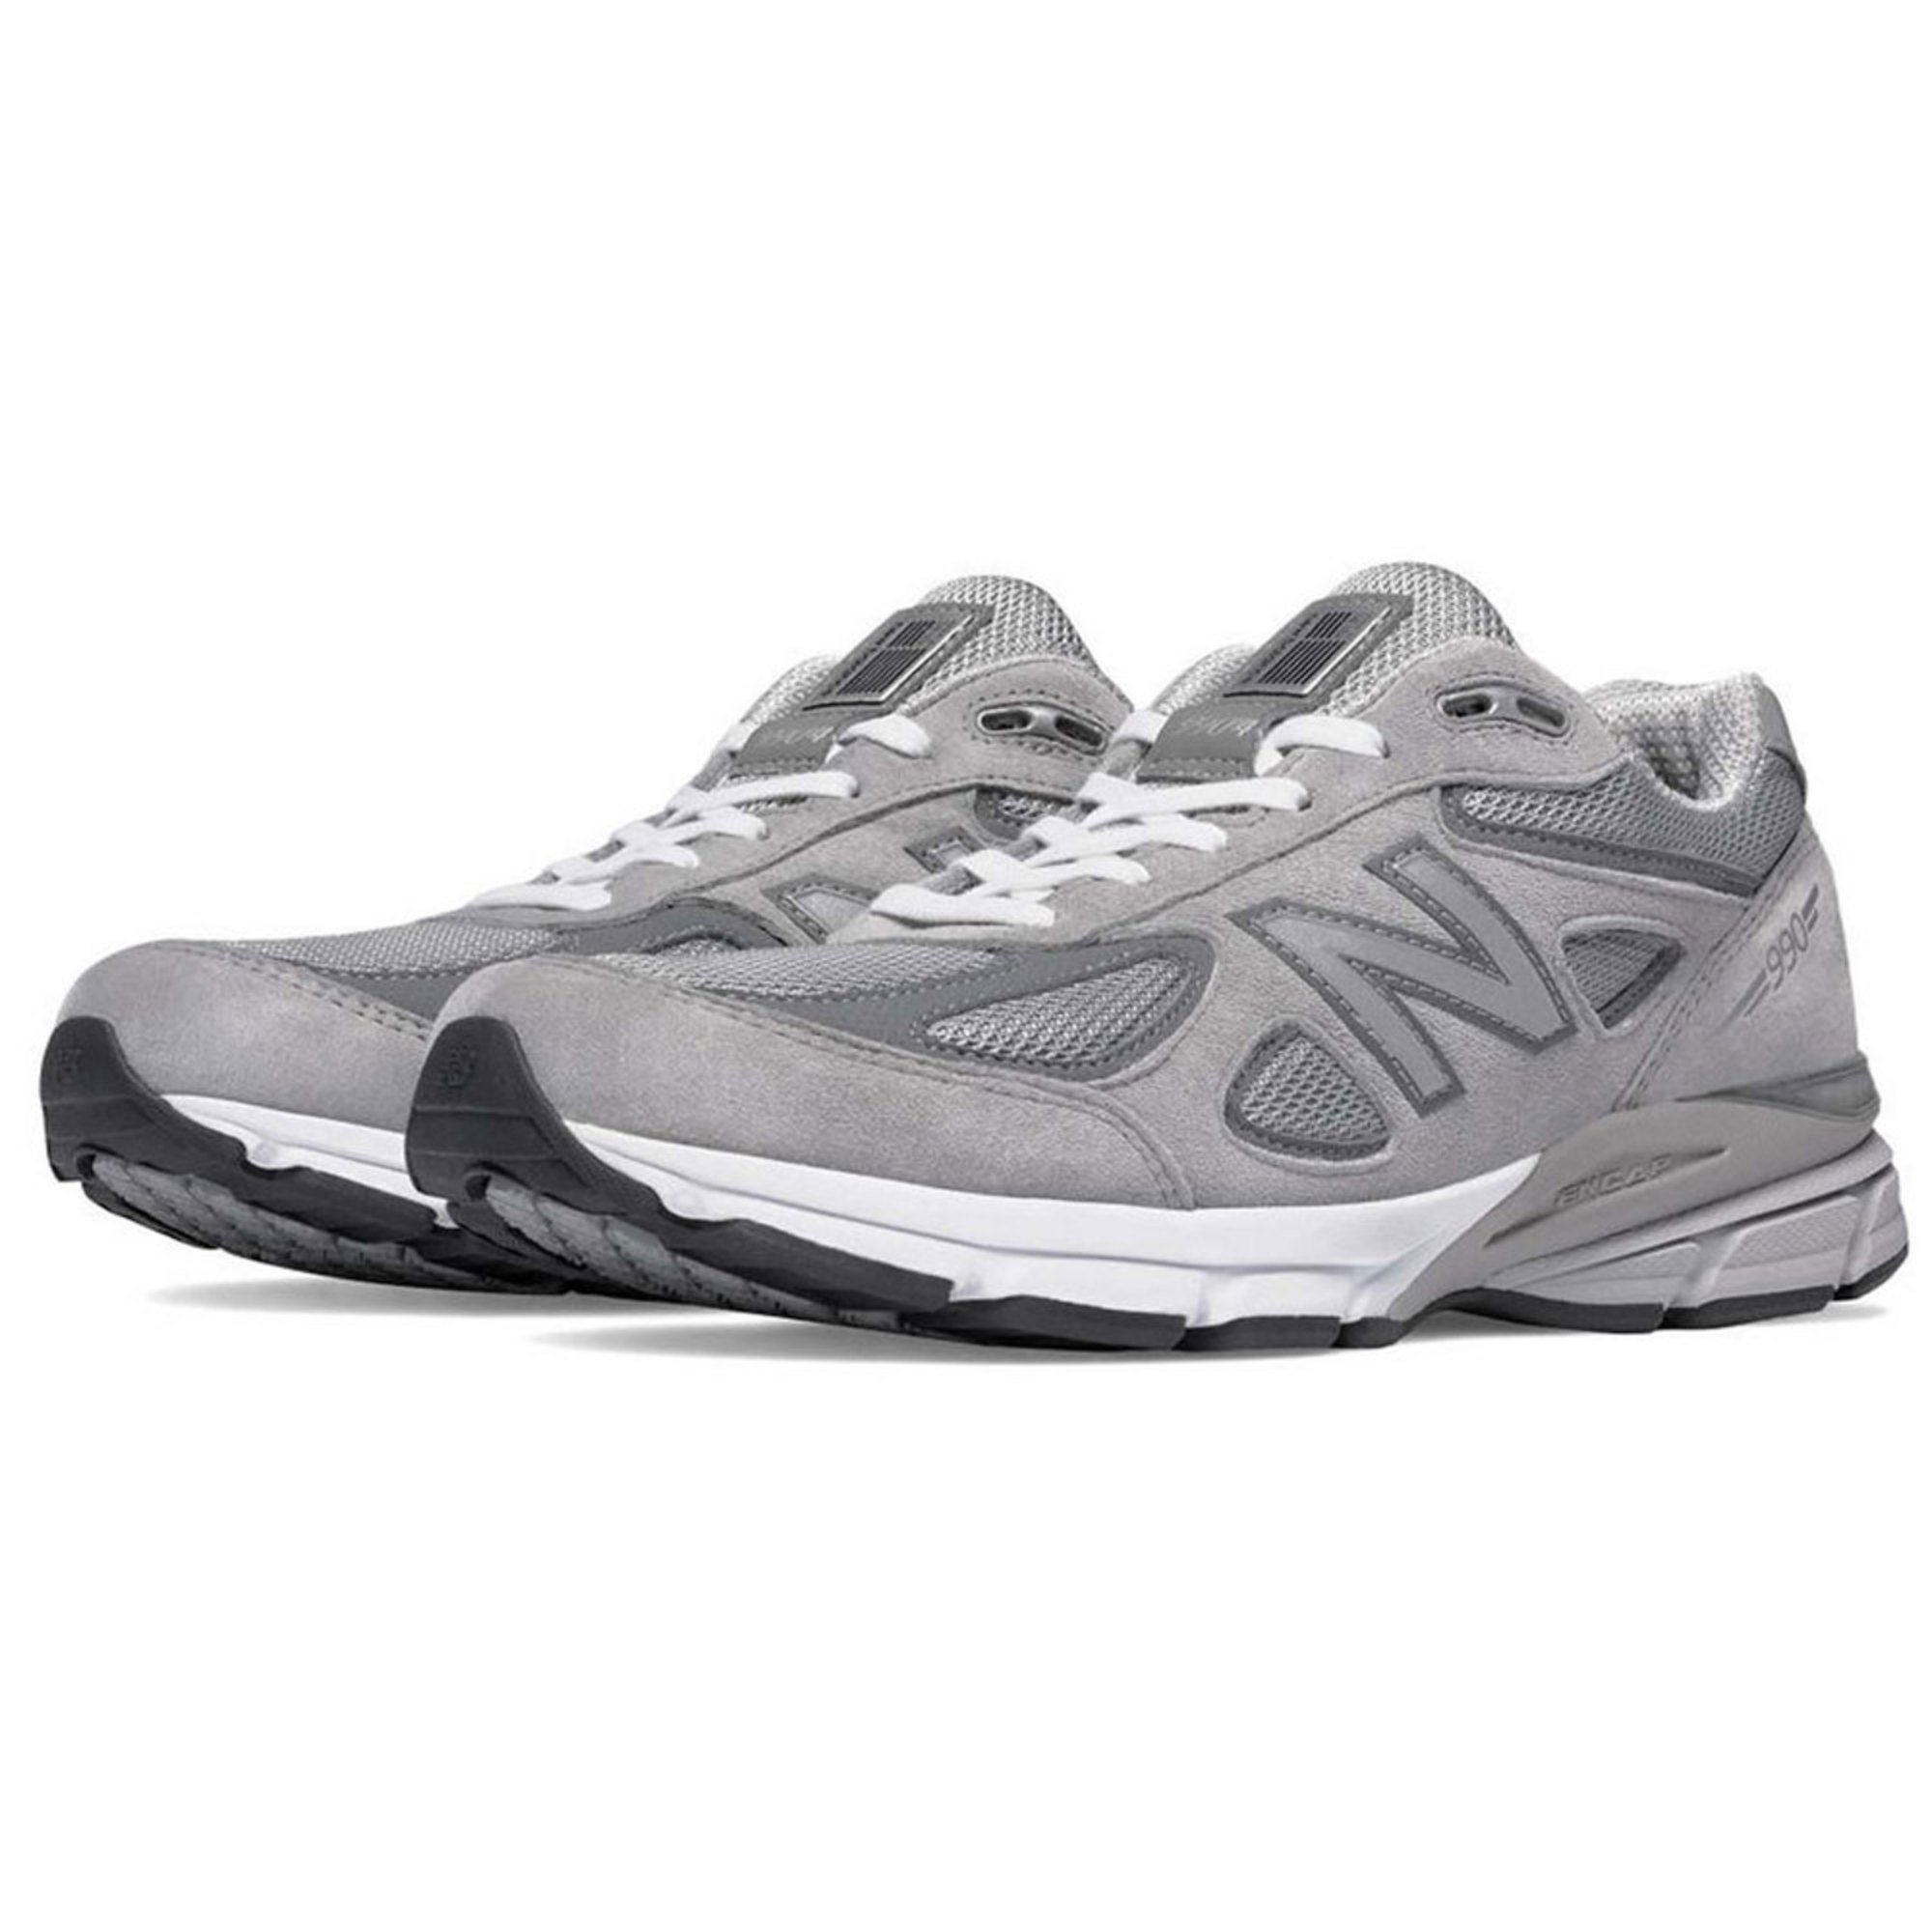 online retailer ff4e6 29d49 New Balance Men s 990v4 Running Shoe   Men s Running Shoes   Shoes ...